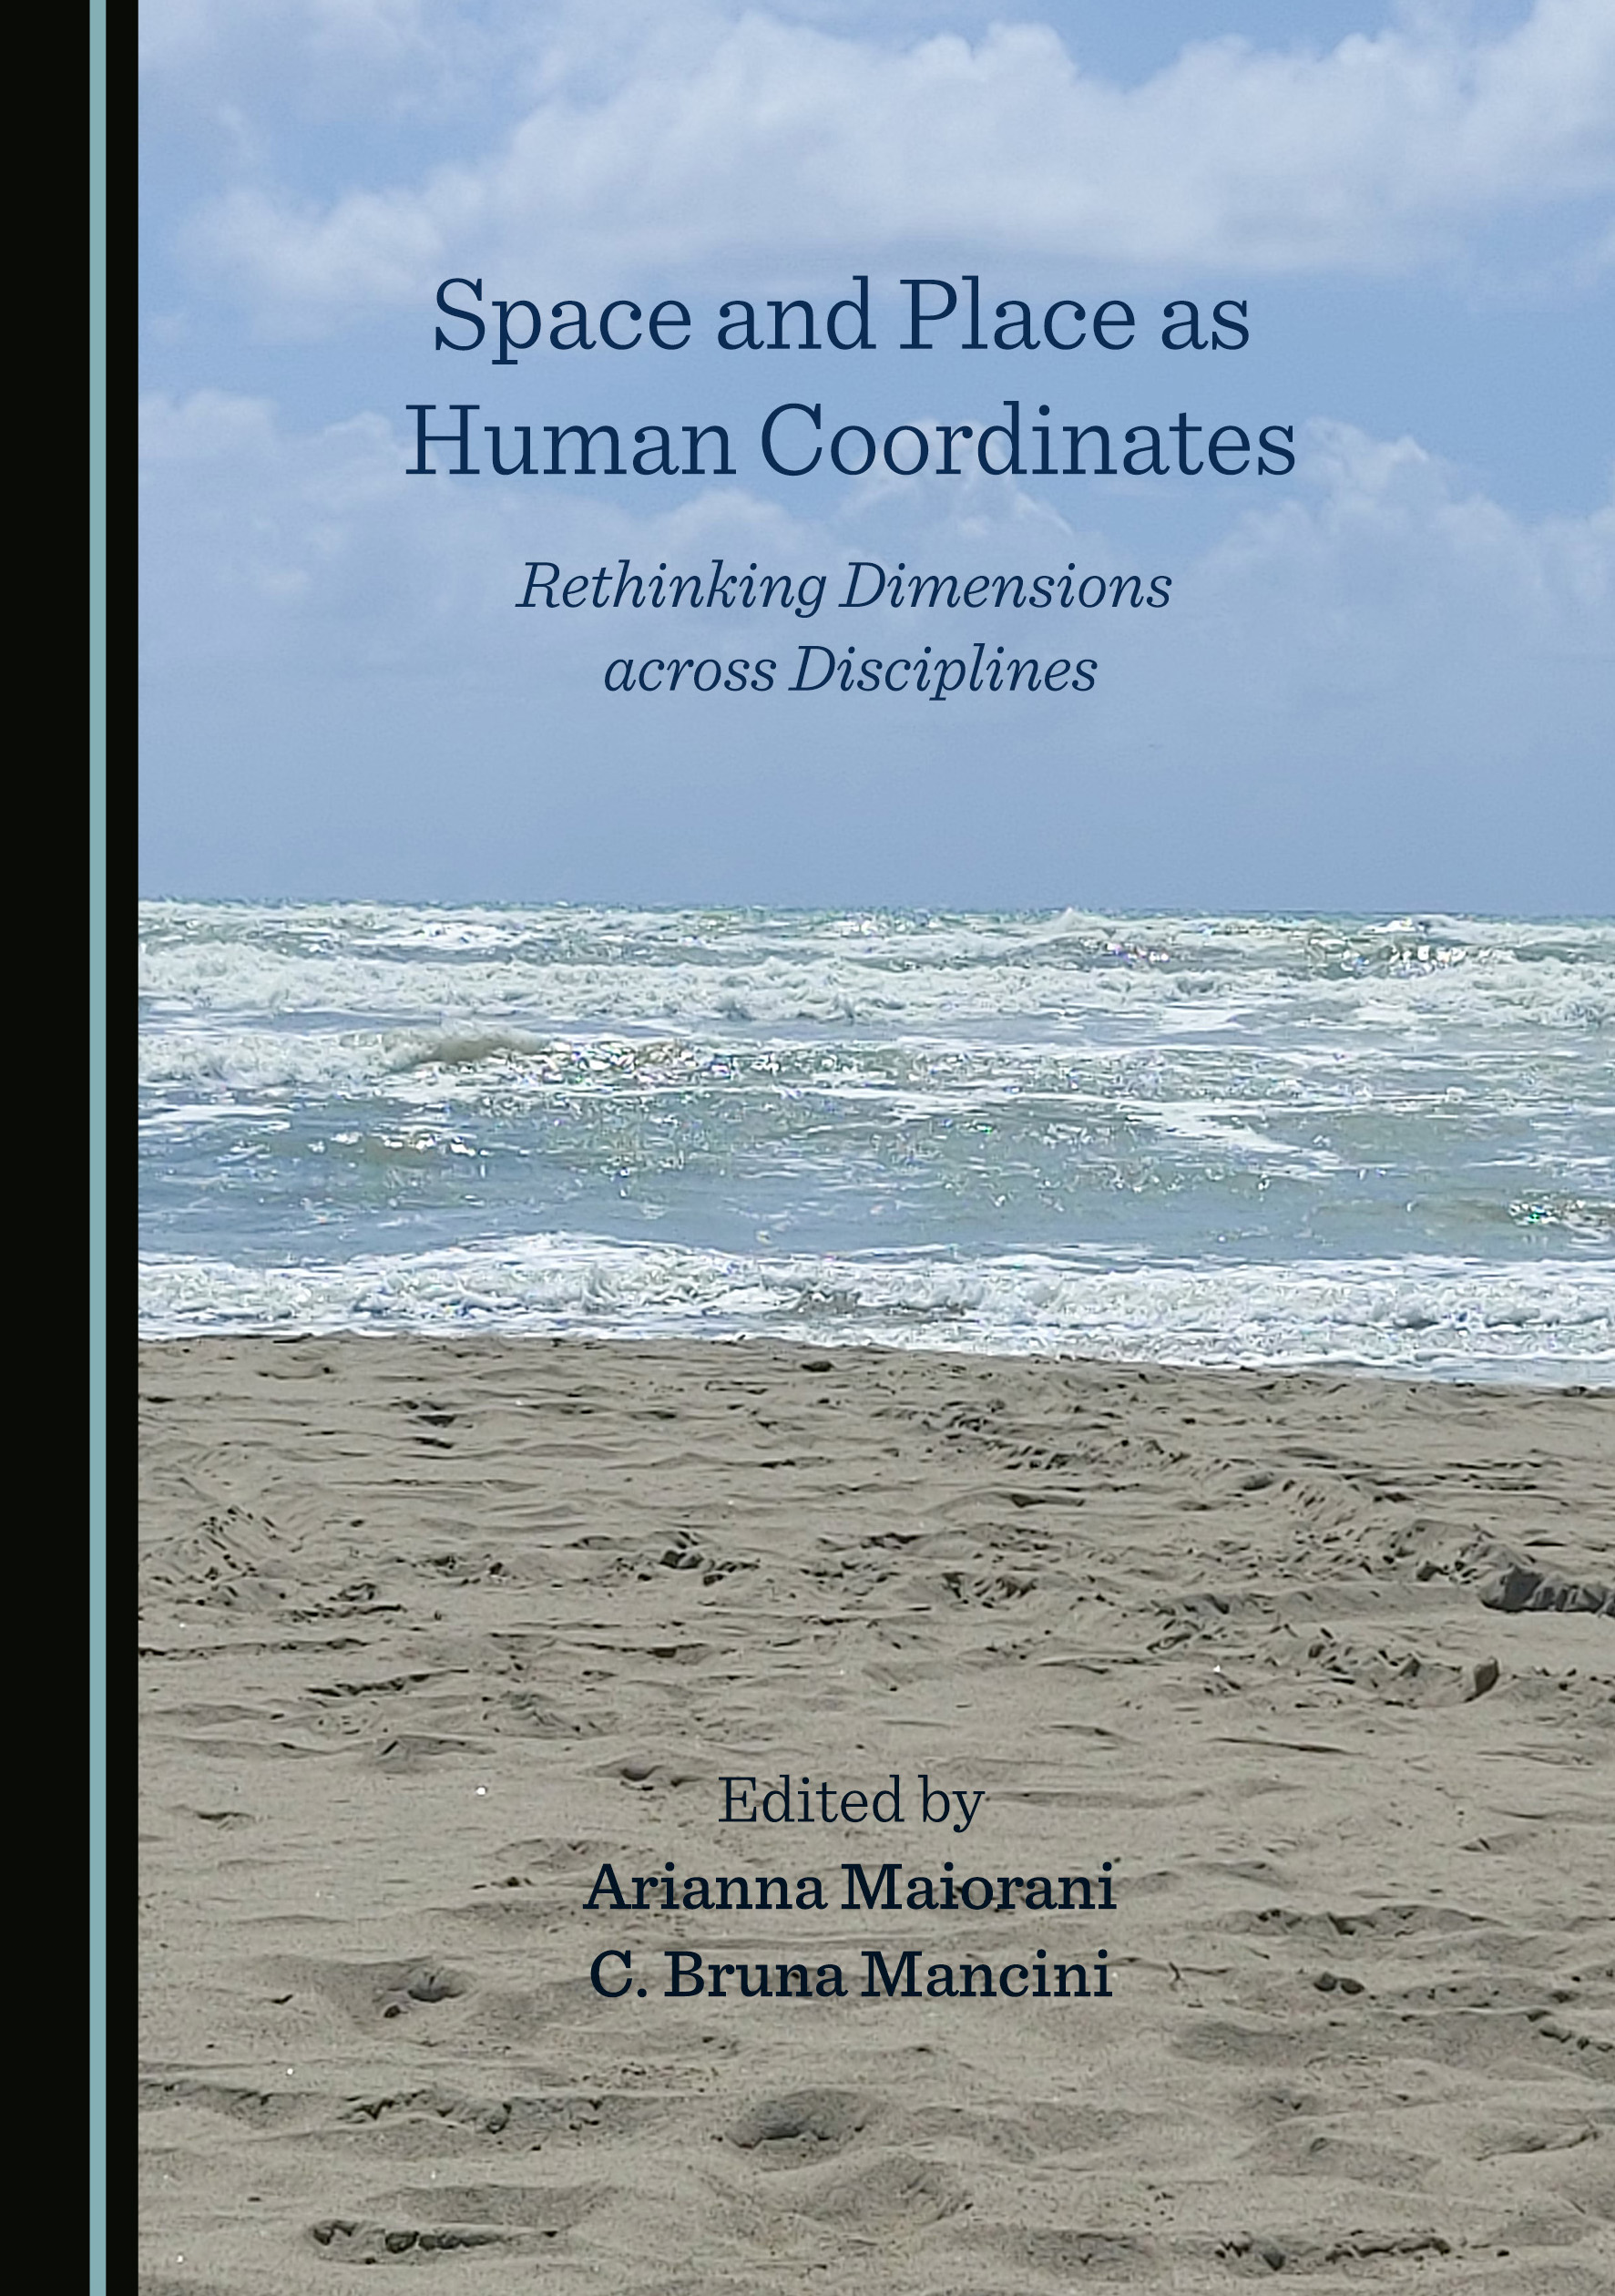 Space and Place as Human Coordinates: Rethinking Dimensions across Disciplines